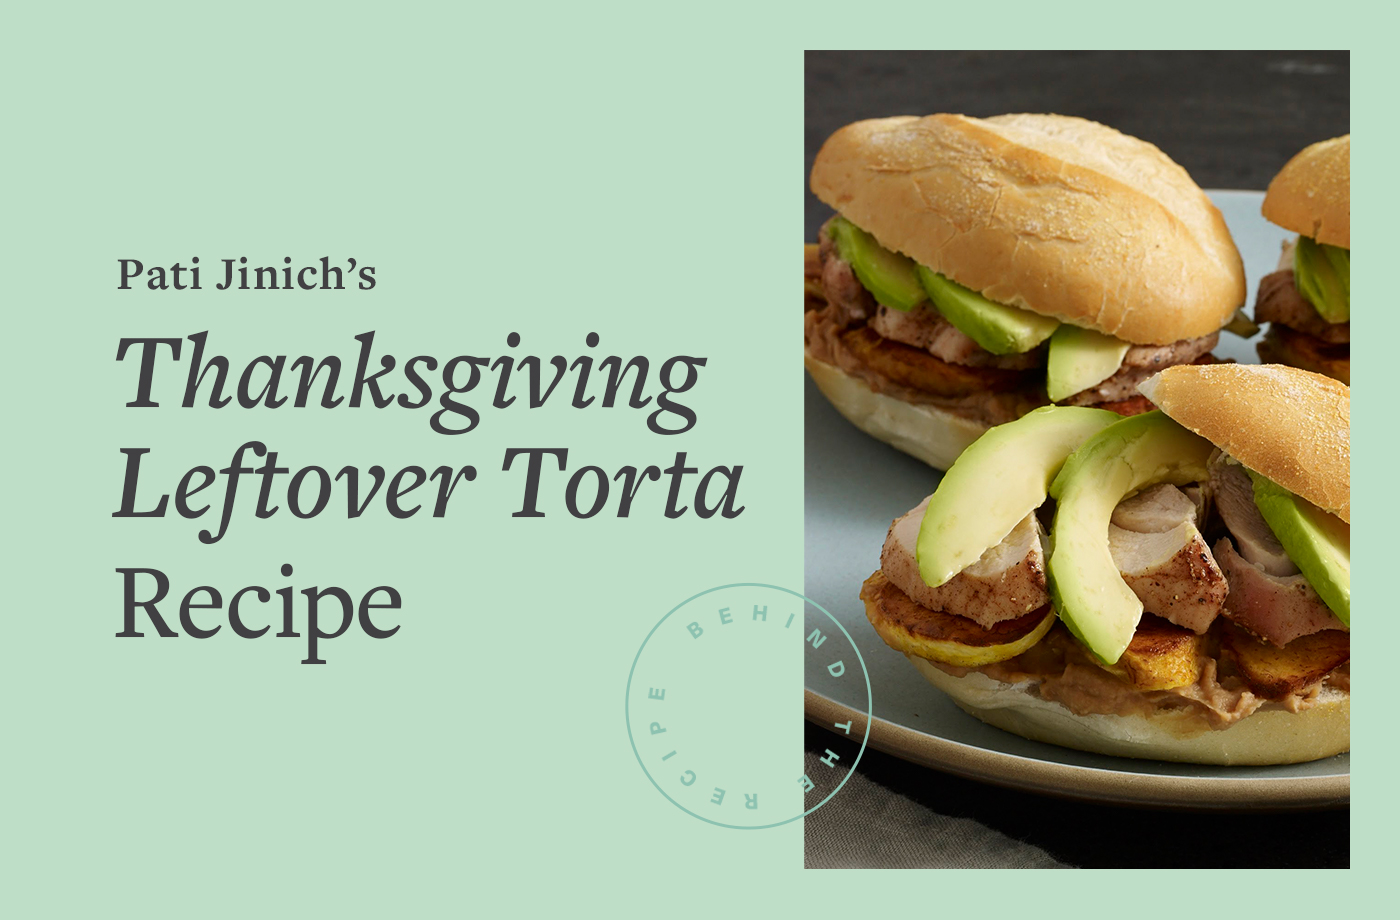 Thumbnail for The Easy Leftover Thanksgiving Turkey Dish Pati Jinich Looks Forward to Every Year